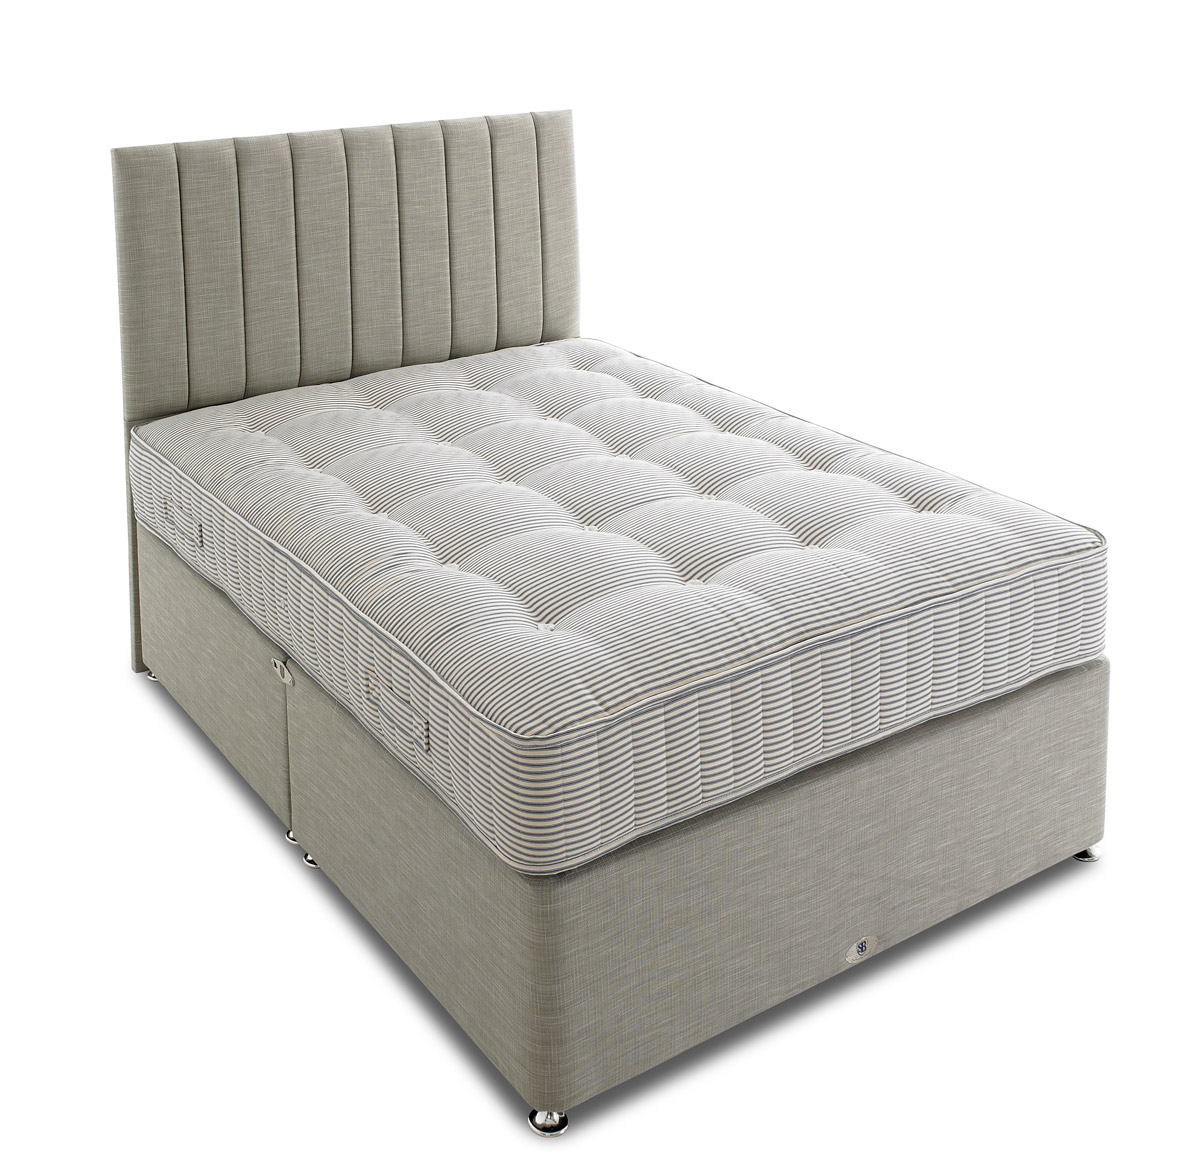 Hotel Deluxe 1000 Pocket Source 5 Divan Set from £329